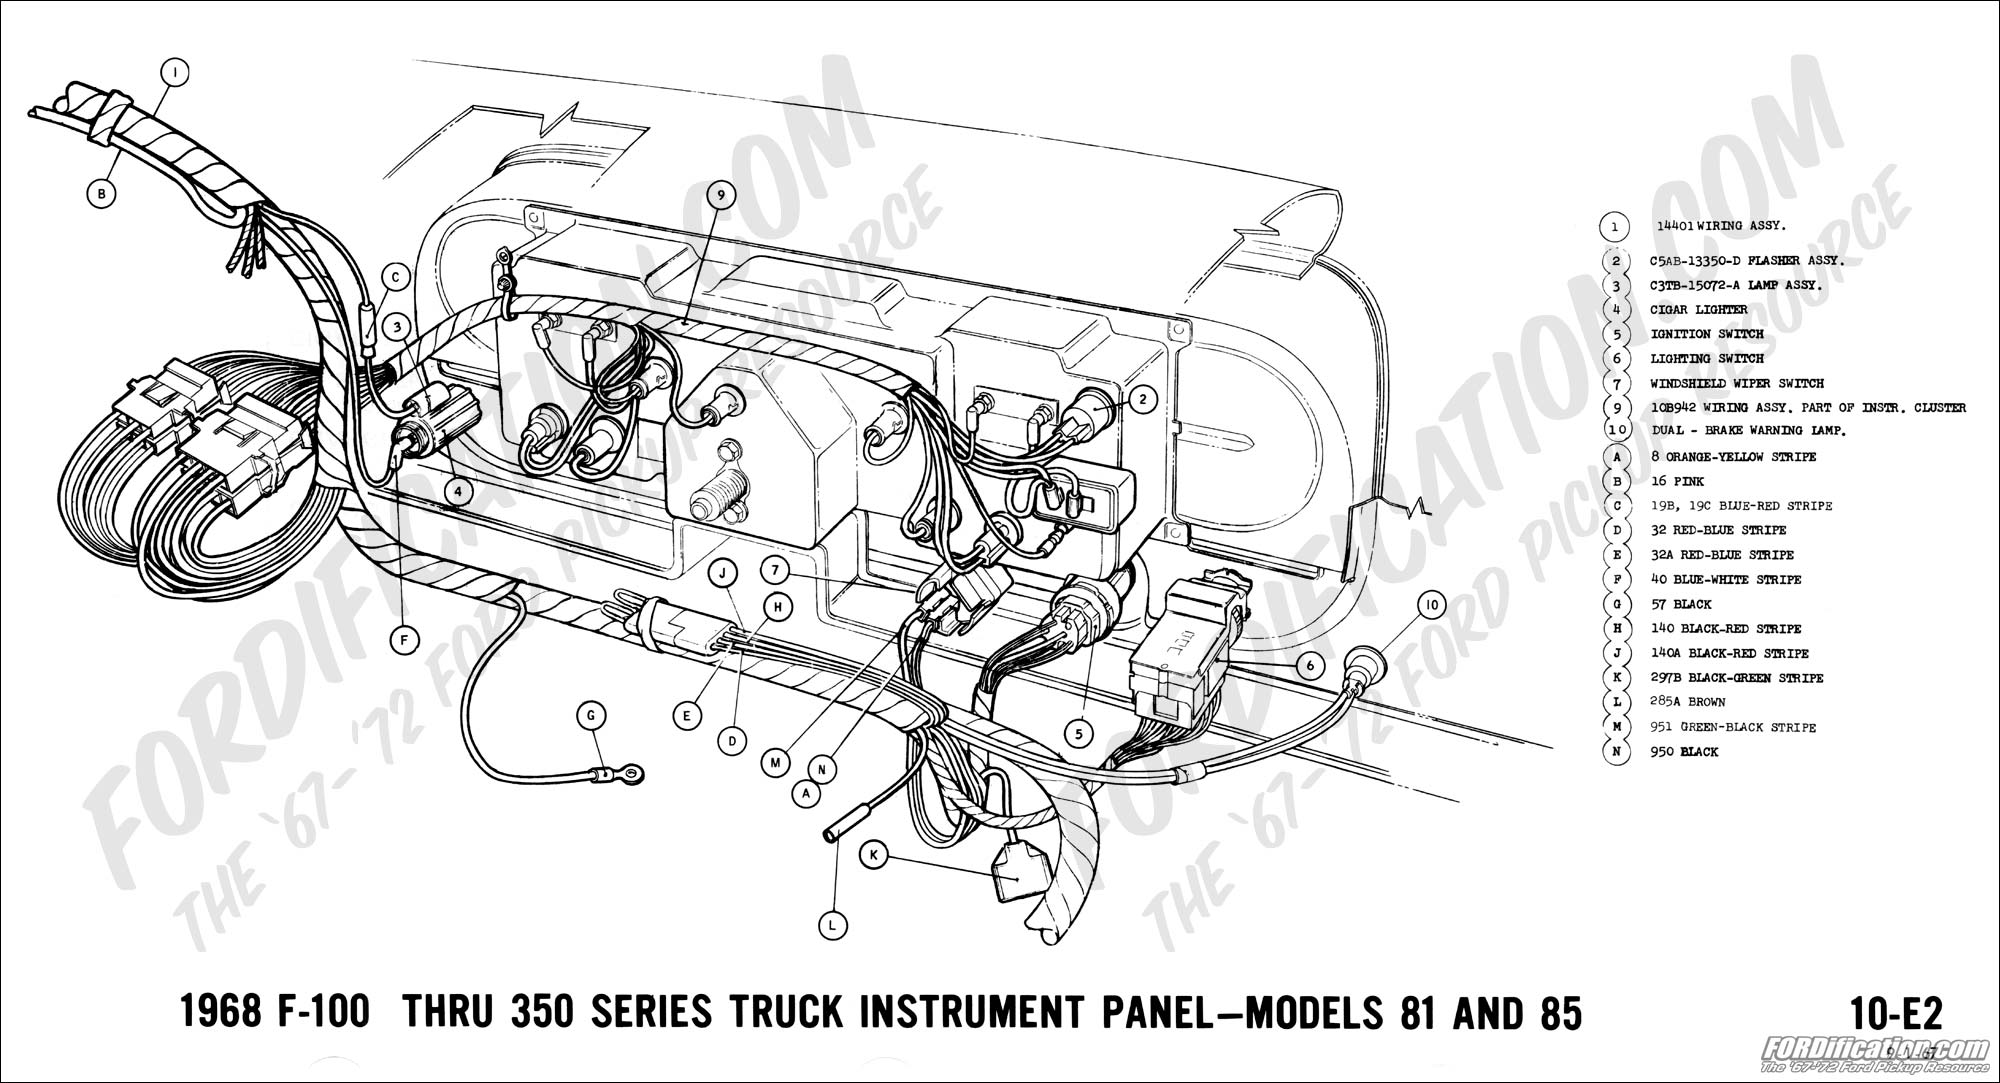 2004 Mustang Gt Fuse Box Diagram In Depth Wiring Diagrams 04 Ford Truck Technical Drawings And Schematics Section H